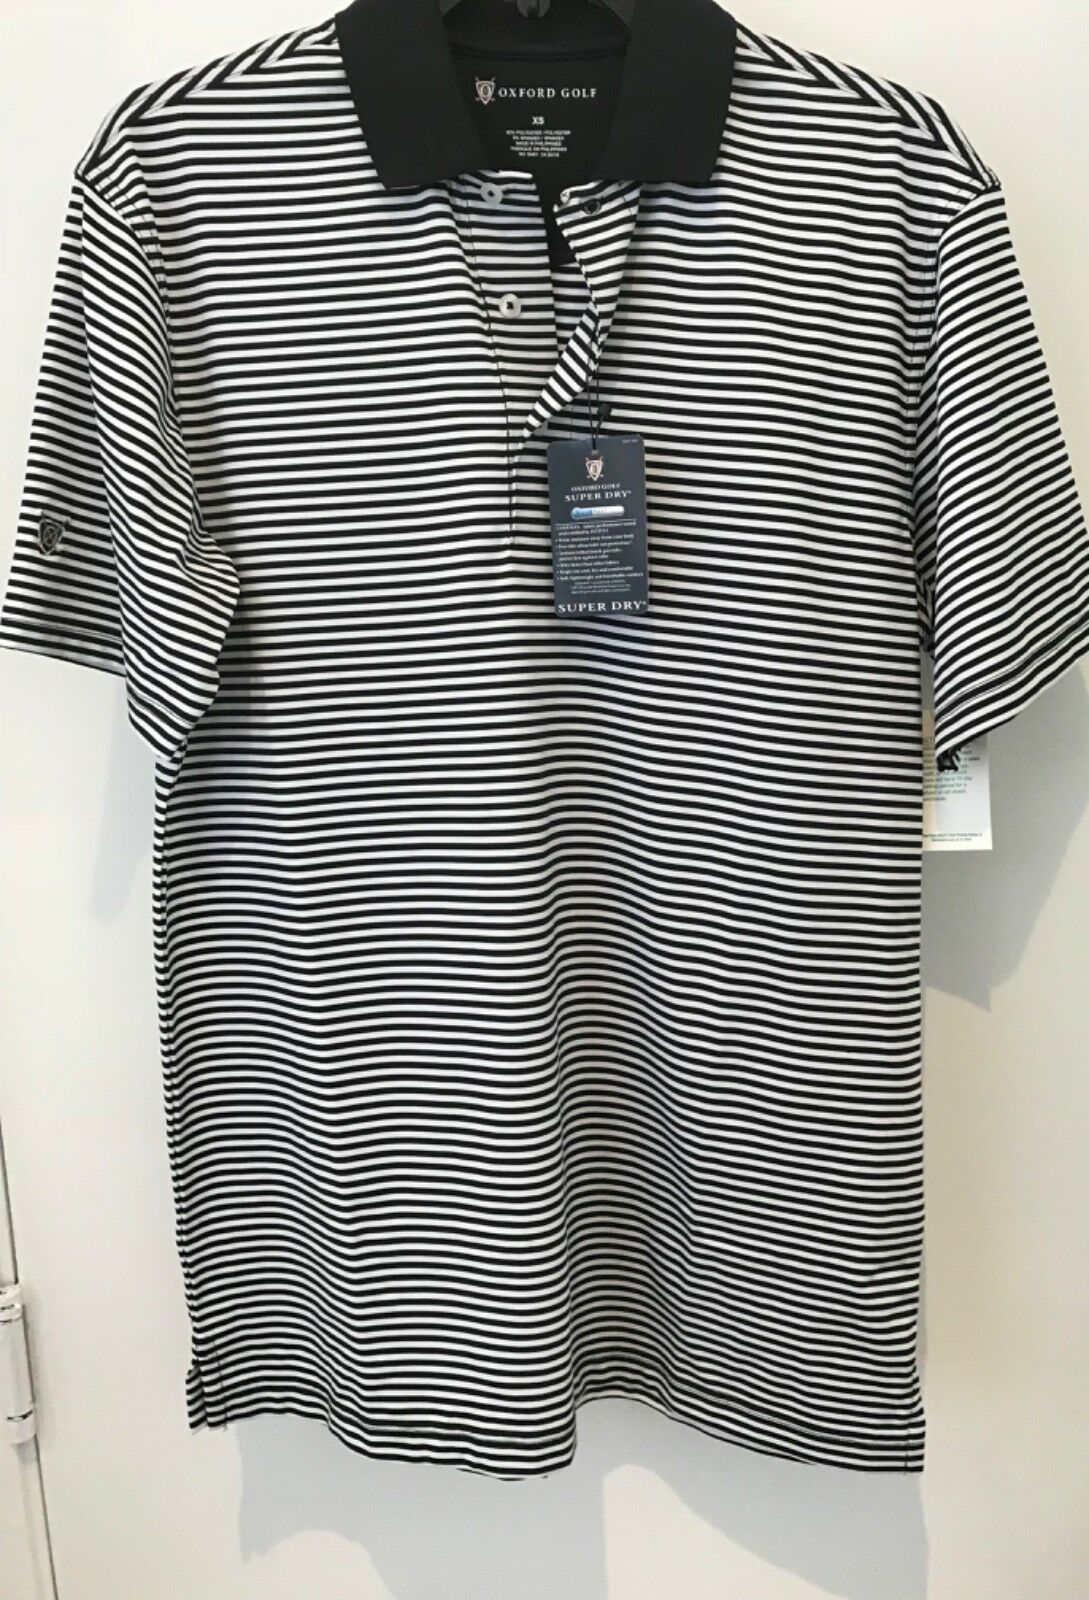 Oxford Golf Super Dry Cool Max Mens XS Black Striped Short Sleeve Polo Shirt NWT